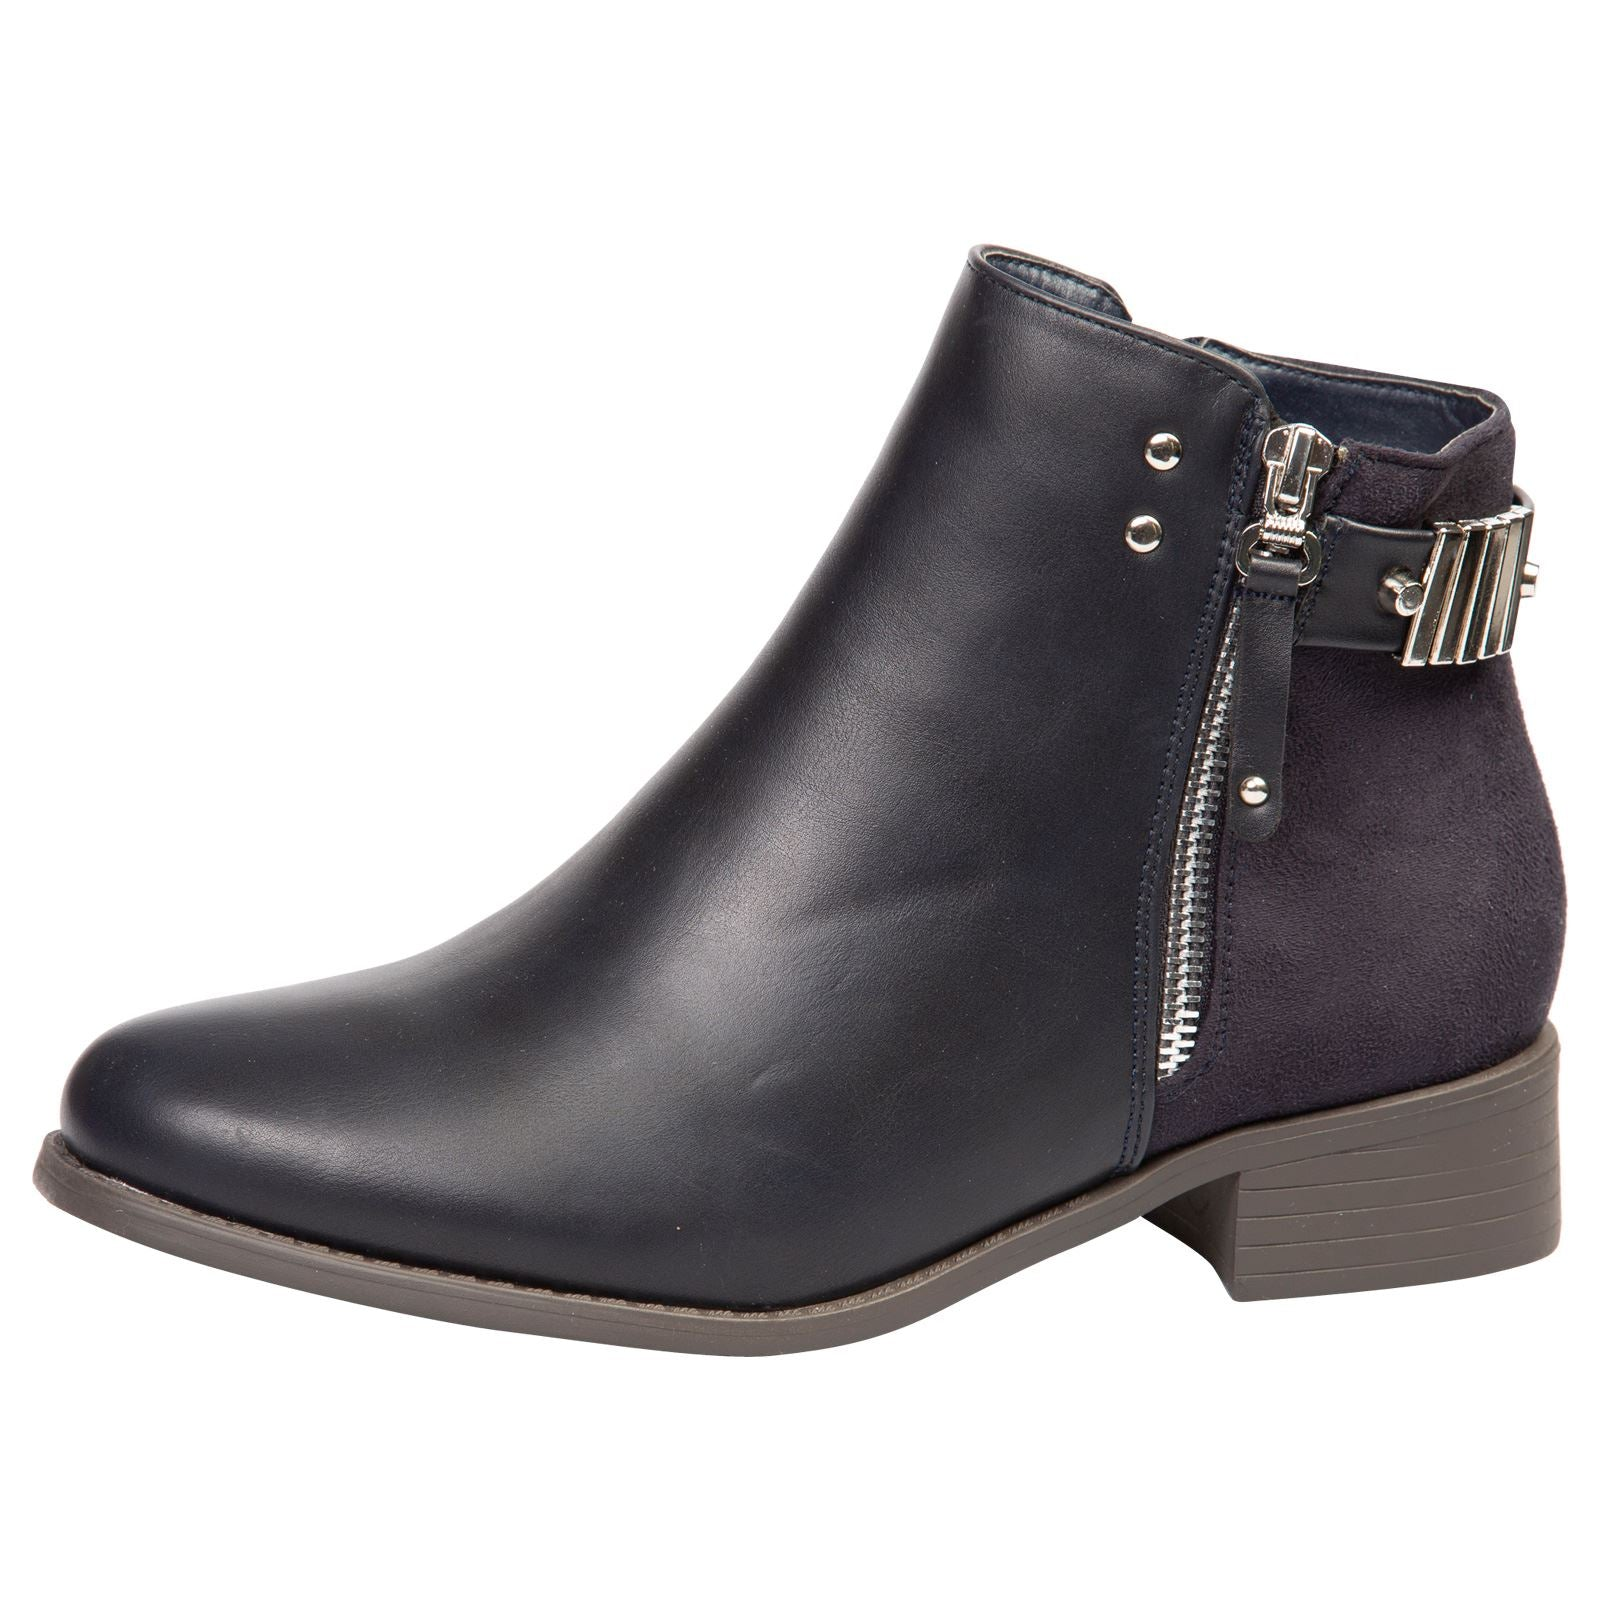 Daleyza Two-toned Ankle Boots in Navy Blue - Feet First Fashion